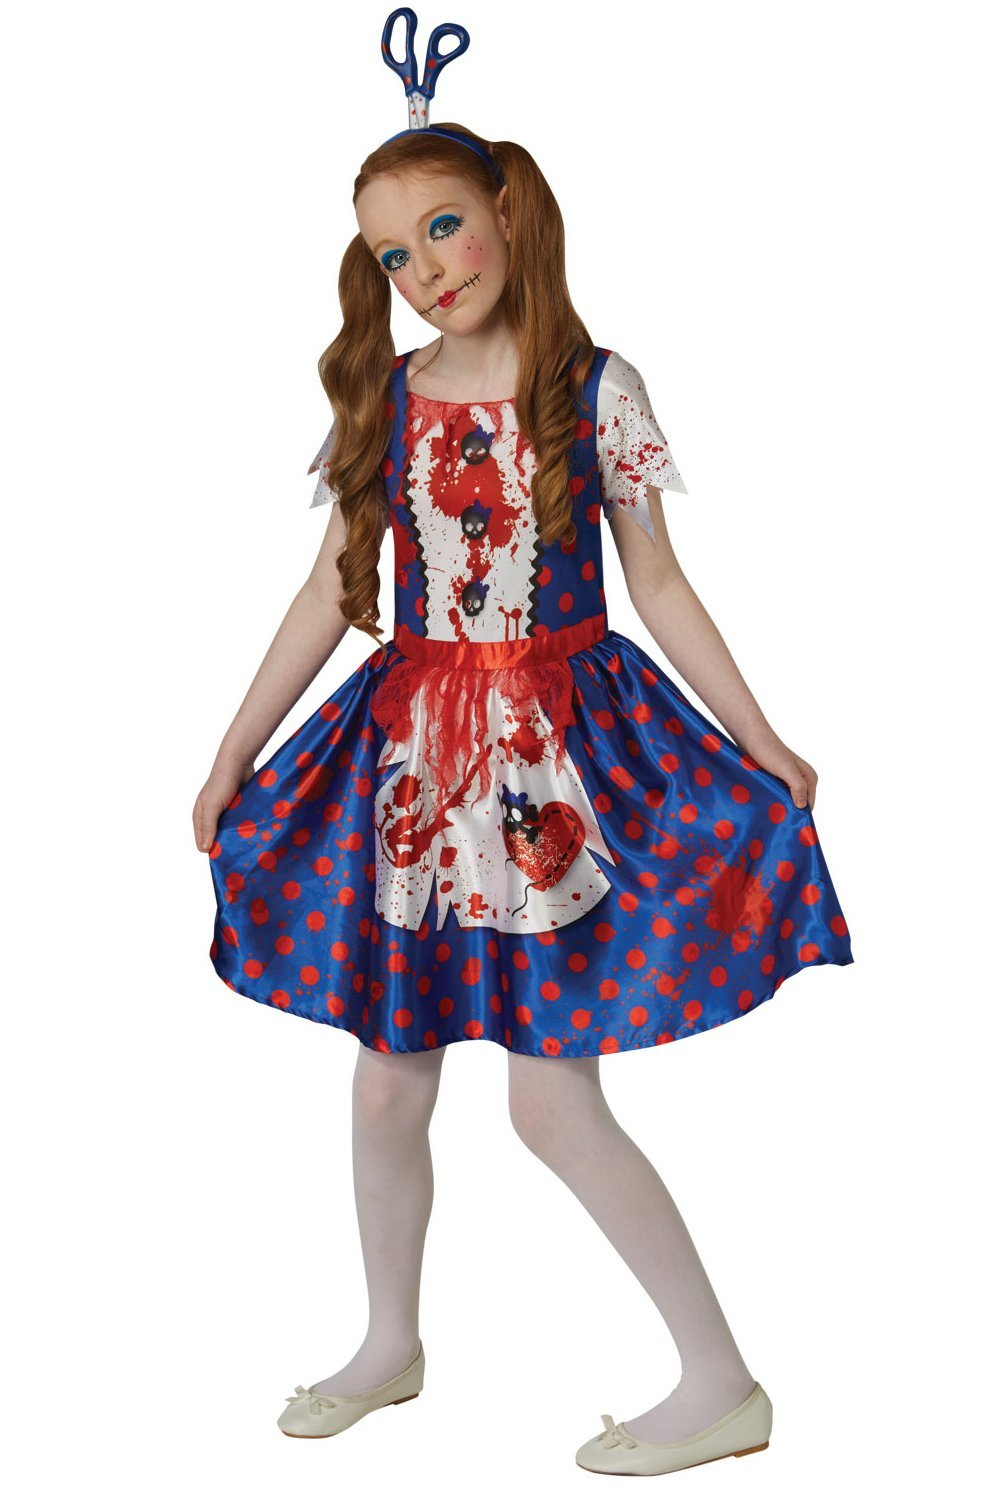 Rag doll costume child 630704